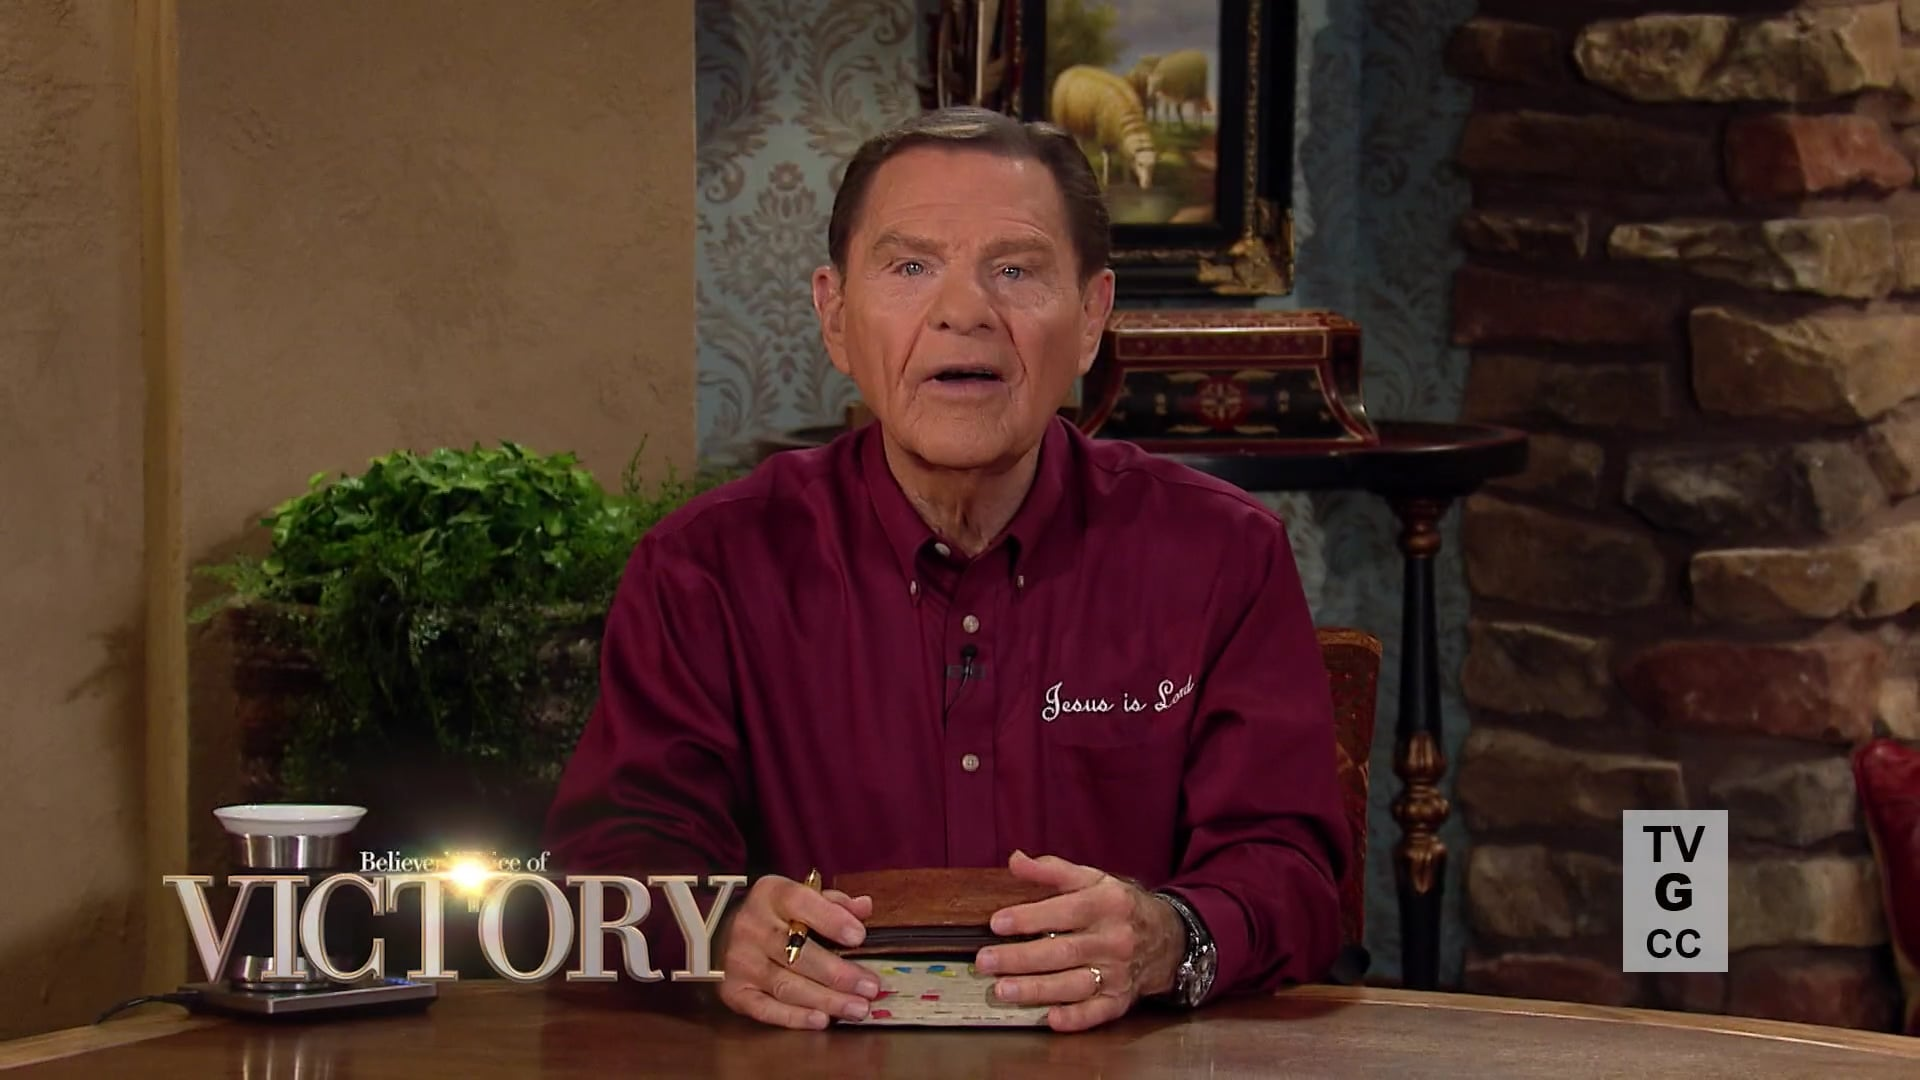 There are many facets of healing—physical, mental, relational and even national healing! Watch Kenneth Copeland on Believer's Voice of Victory as he shares why healing is ours to give and receive. Just like Jesus, we are anointed by God for every season of life to lay hands on the sick and see them recover. It's time to touch the world with the healing power of Jesus!